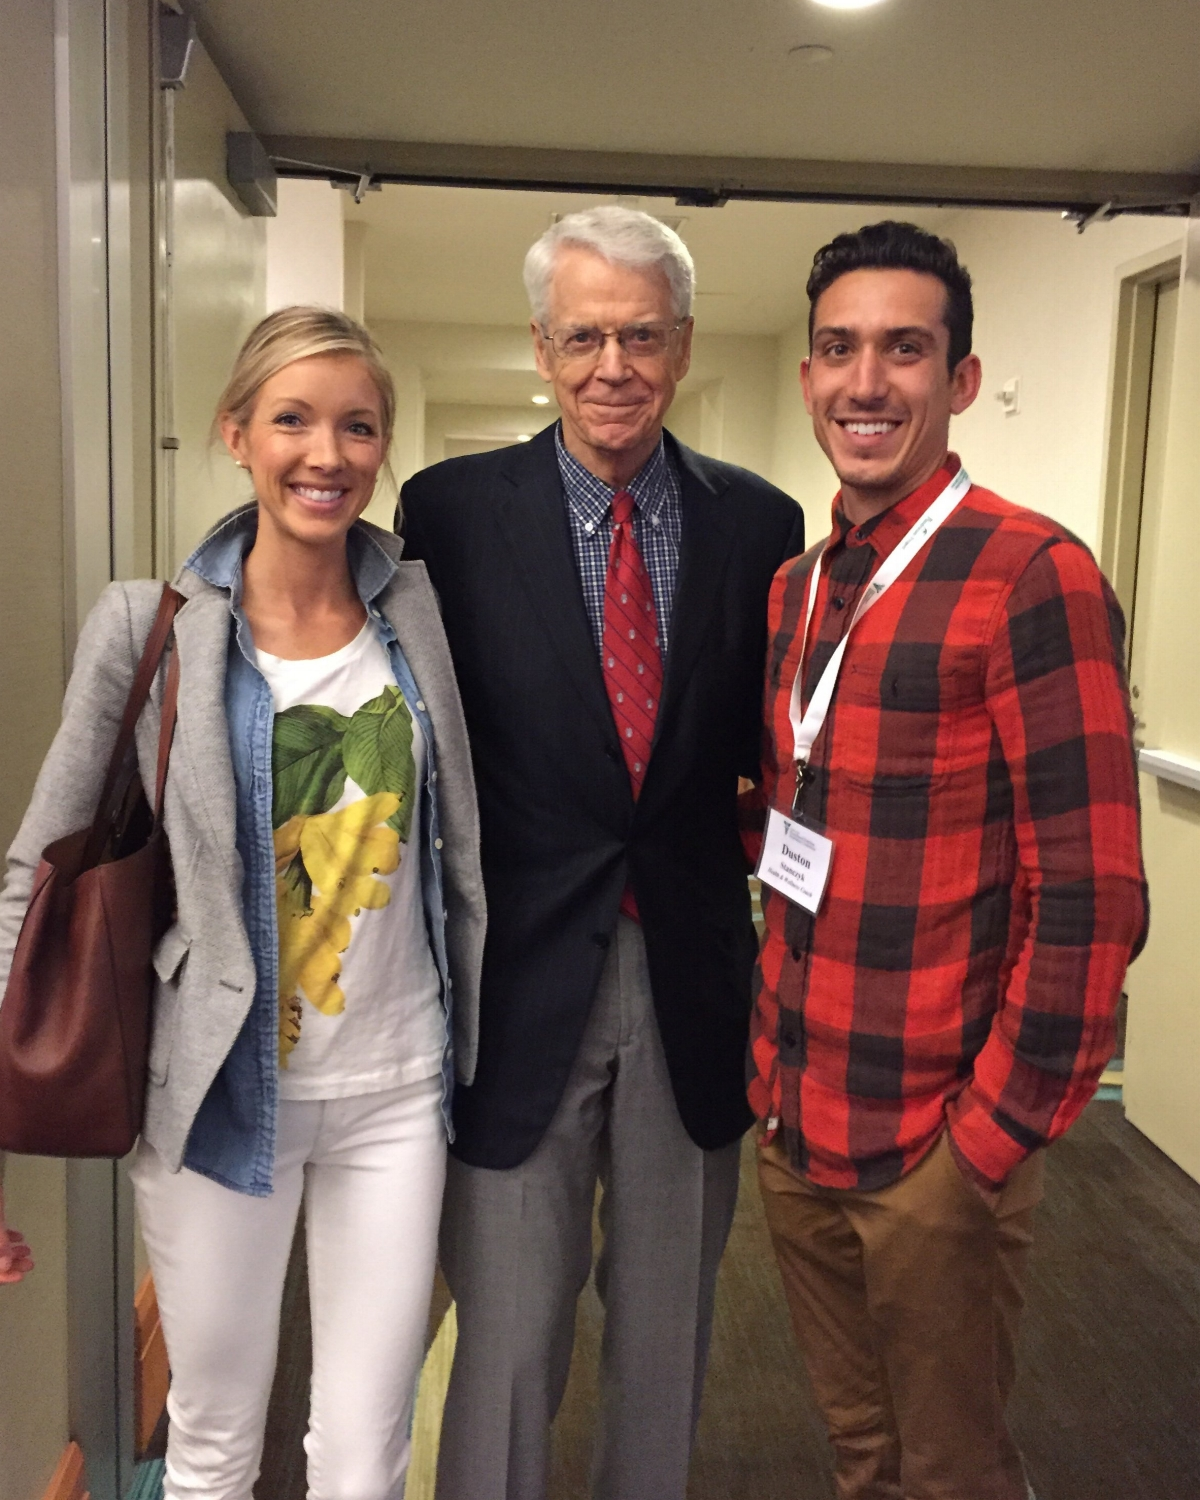 Dr. Esselstyn of Forks Over Knives